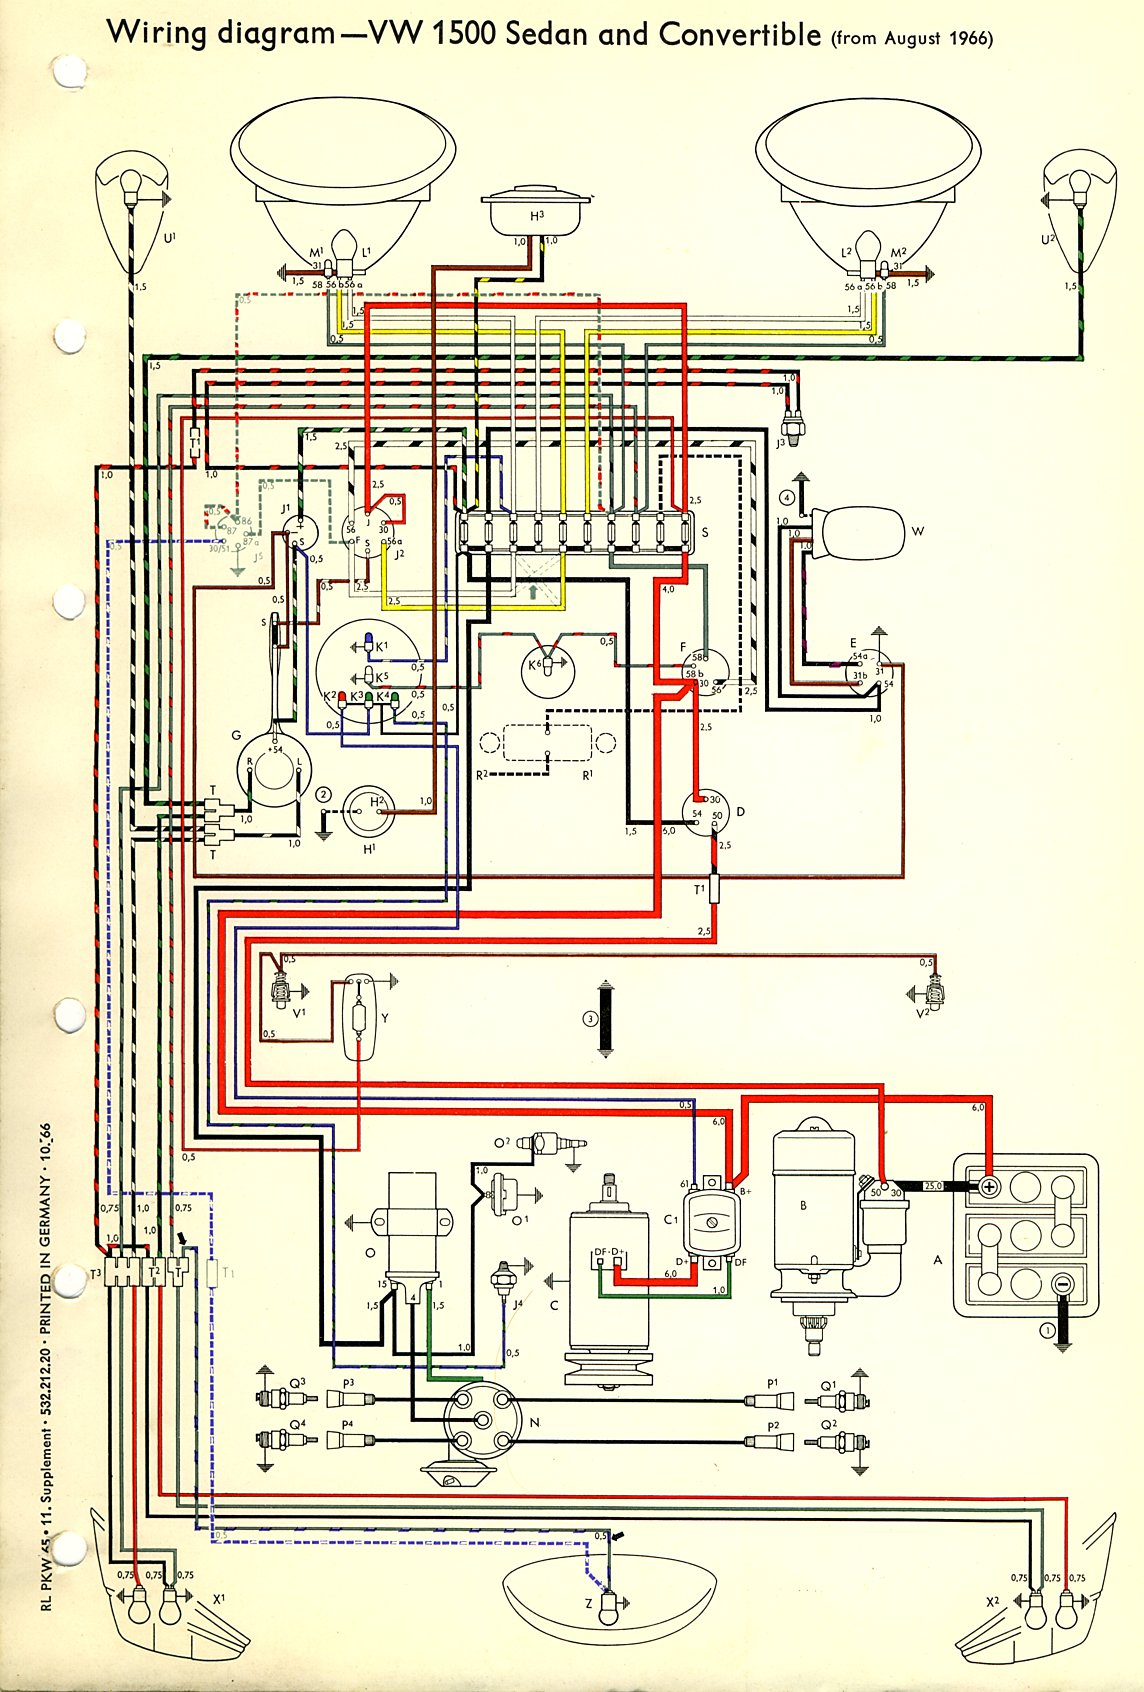 1970 Vw Fuse Box Wiring Schematic 2019 T4 For Sale Beetle Experts Of Diagram U2022 Rh Evilcloud Co Uk Bus